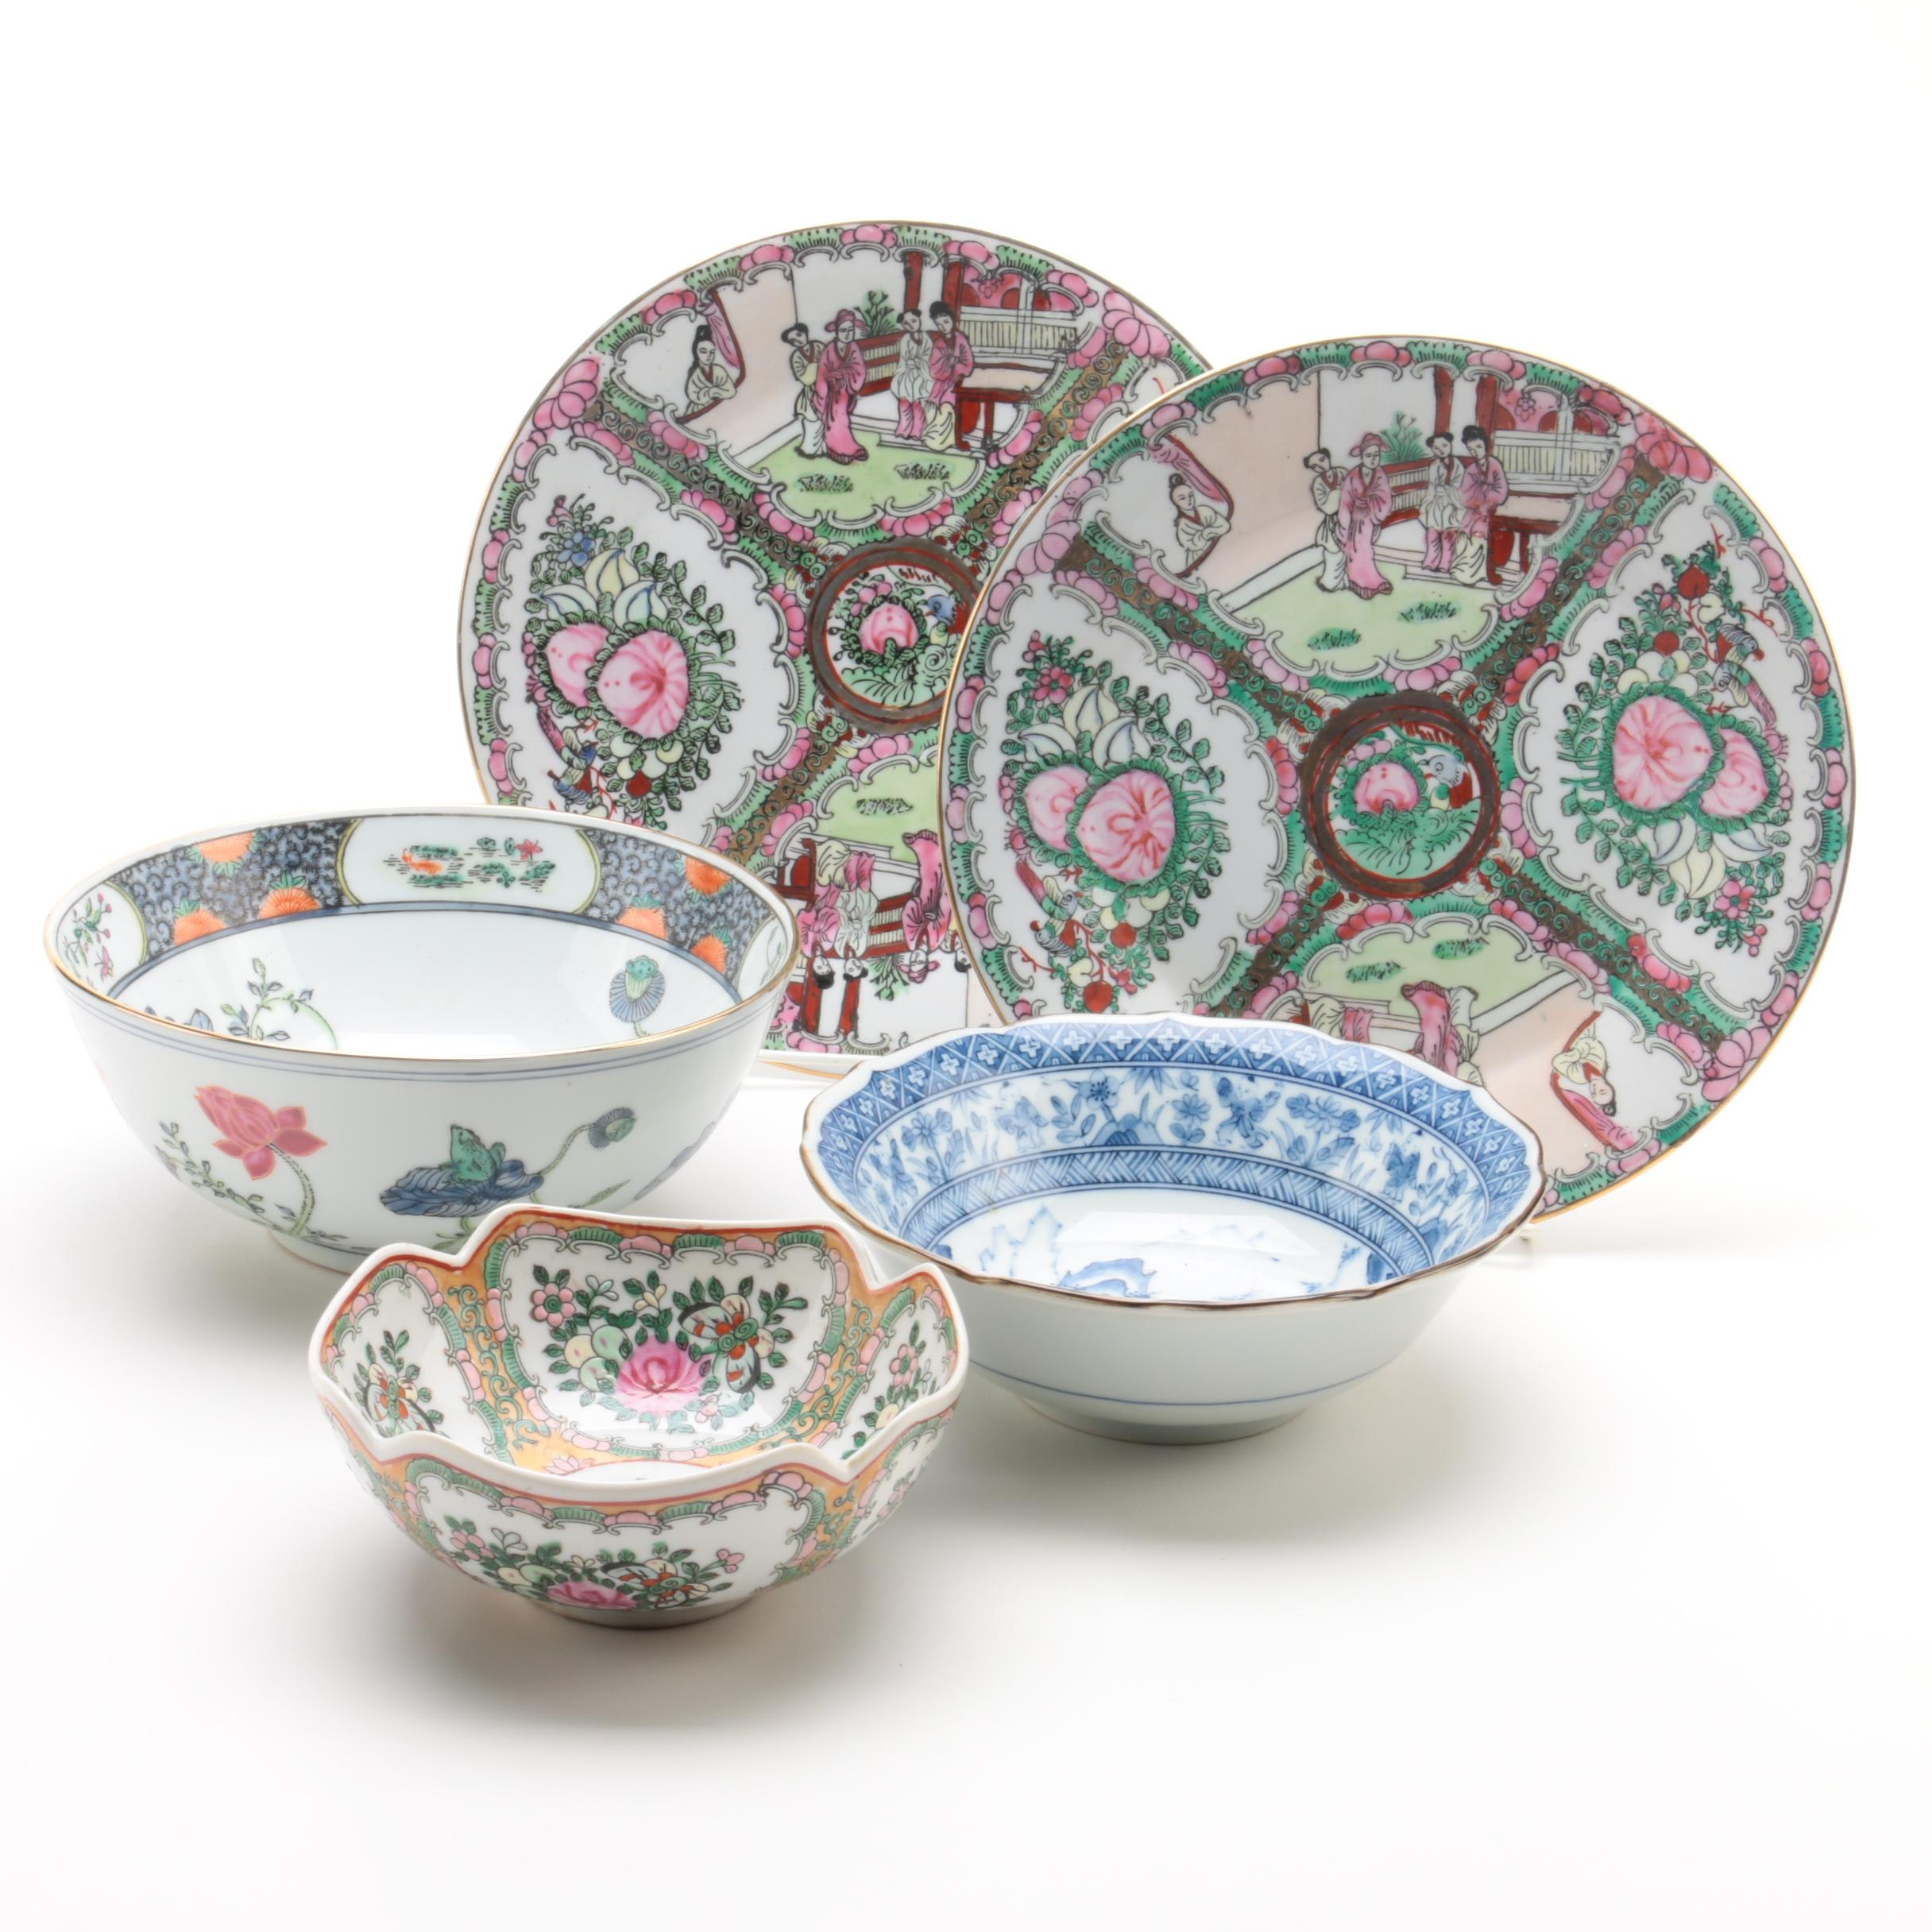 Decorative Chinese and Japanese Porcelain Tableware